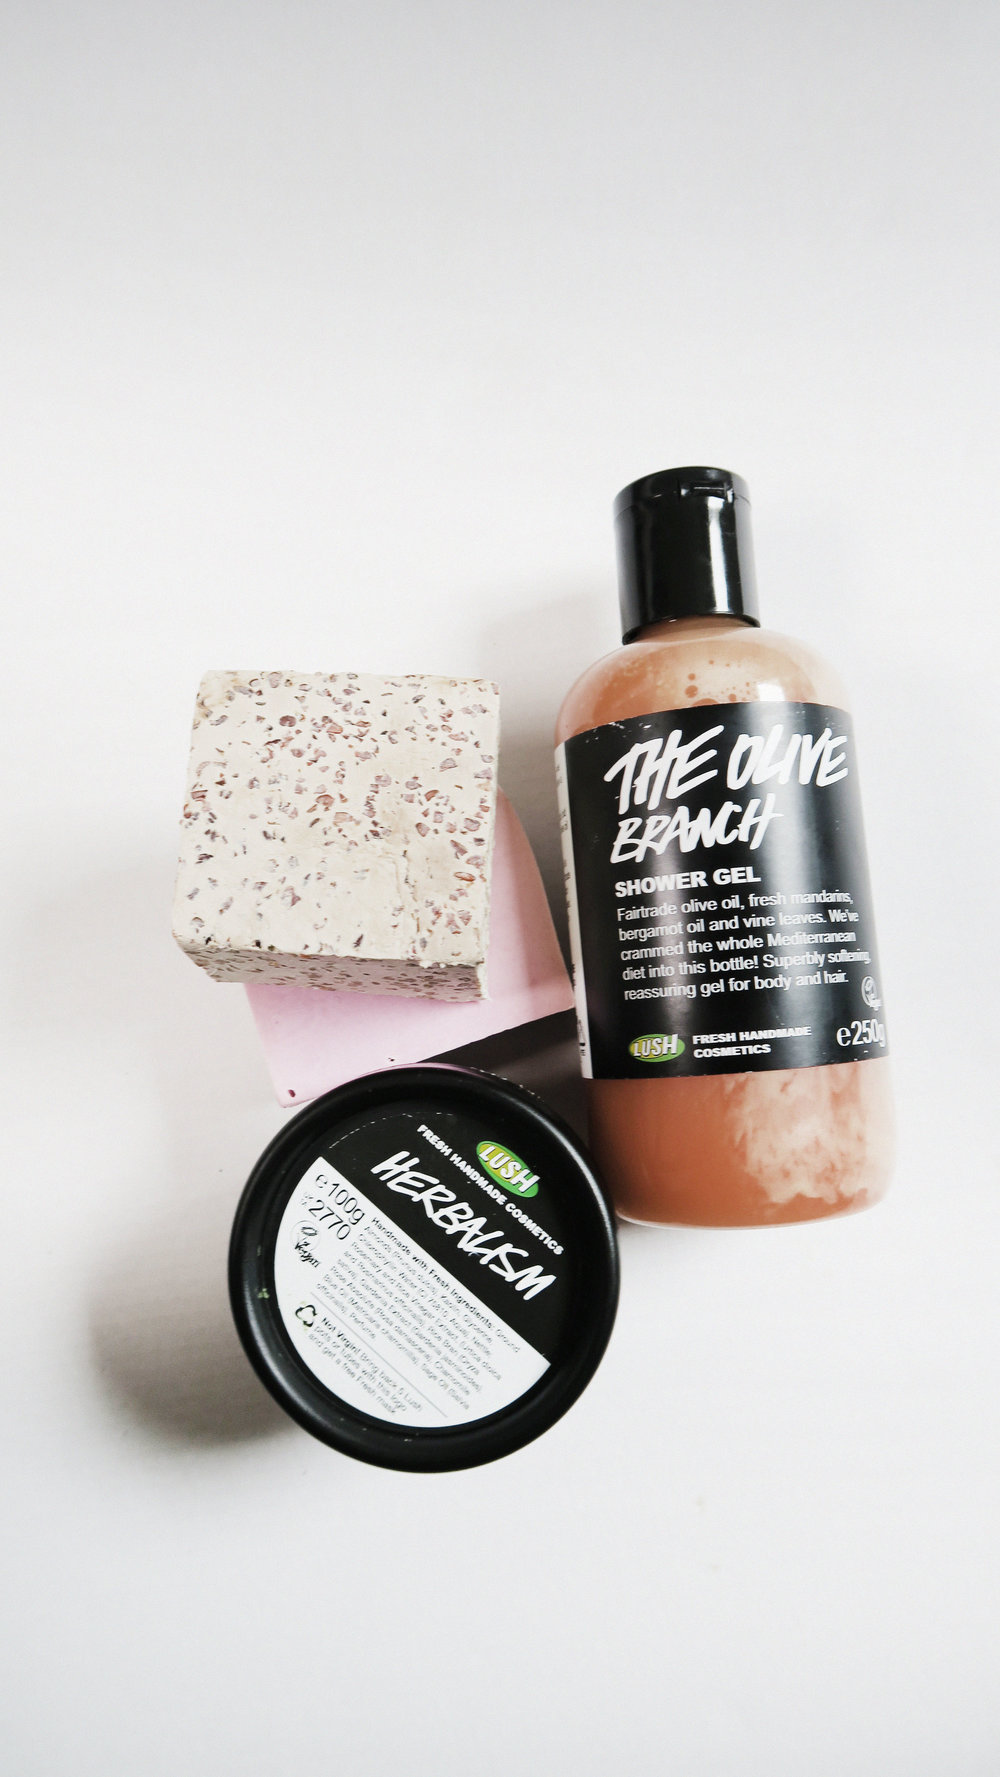 (CLOCKWISE FROM LEFT): LUSH 'ROCK STAR' & 'PORRIDGE' SOAPS, 'THE OLIVE BRANCH' SHOWER GEL, & 'HERBALISM' FACIAL CLEANSER